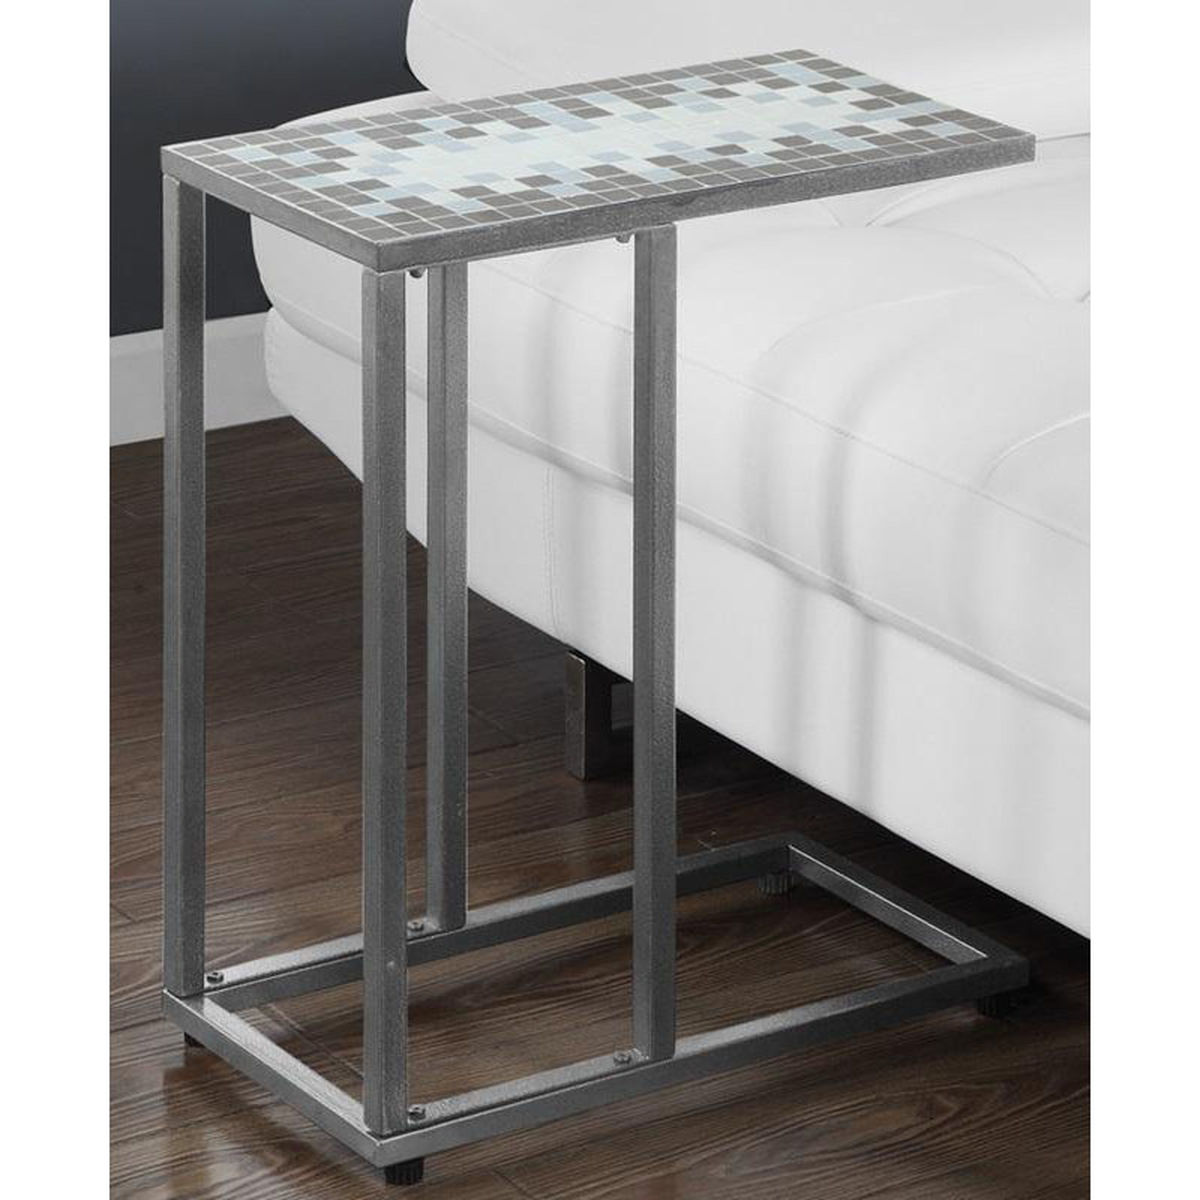 hammered metal accent table bizchair monarch specialties msp main our slide under sofa with gray and blue outdoor furniture covers round light bulbs antique looking end tables